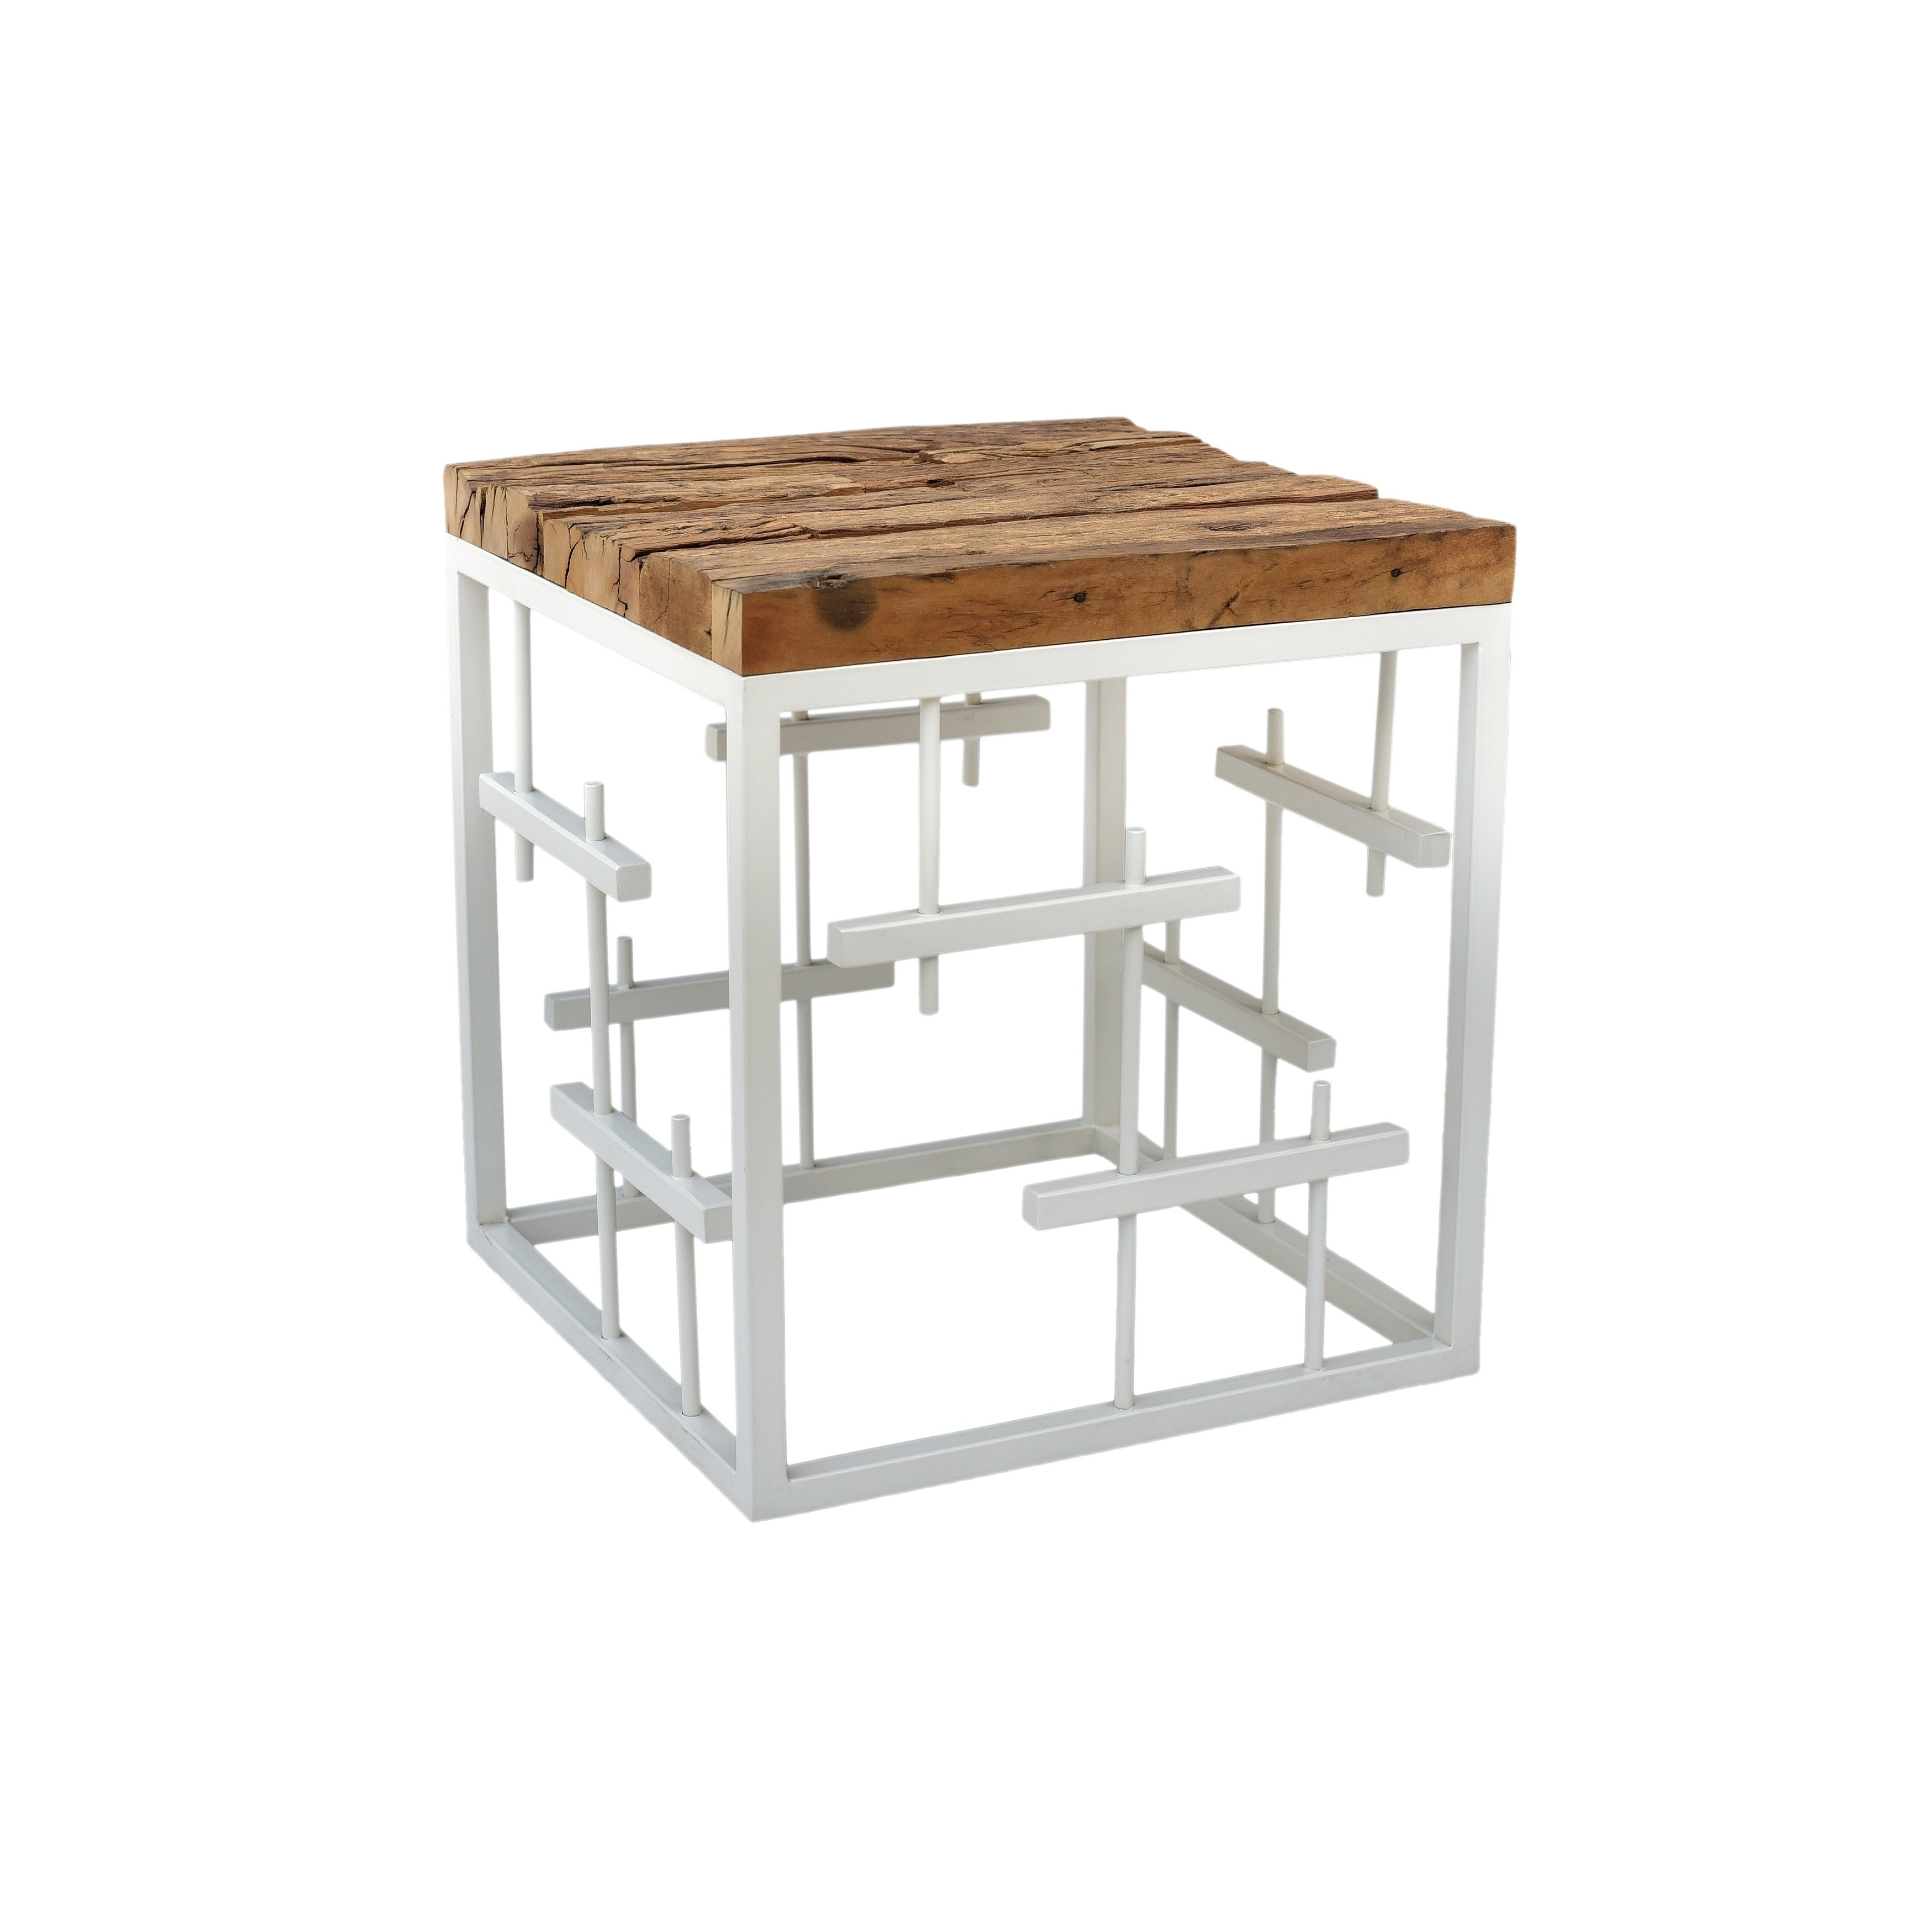 aurelle home rustic modern white solid wood accent table oak tables free shipping today unique coffee designs slim console with storage pub bar height mosaic dining and chairs usb